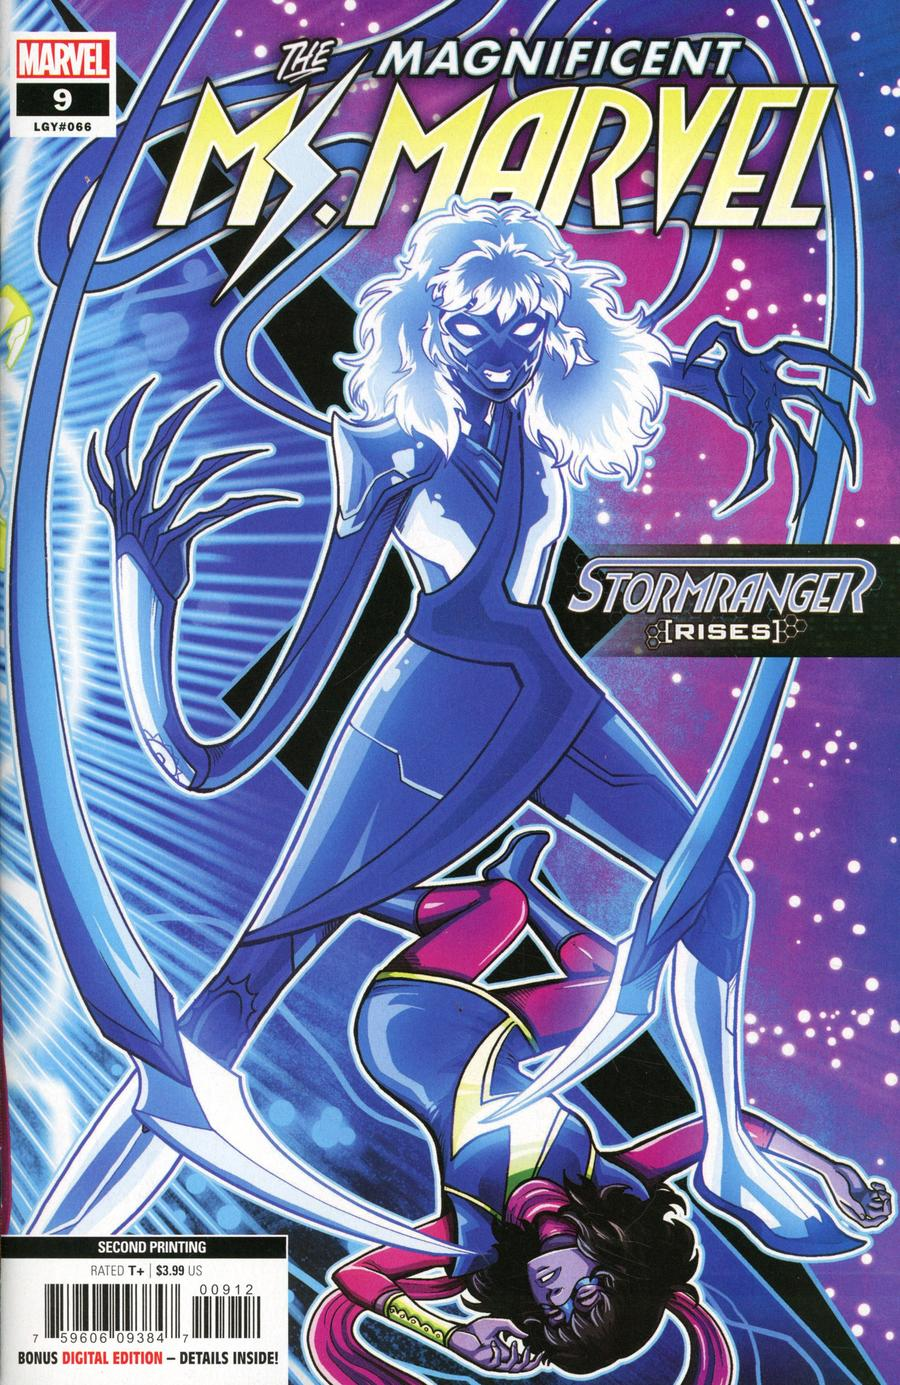 The Magnificent Ms. Marvel #9 (2019)